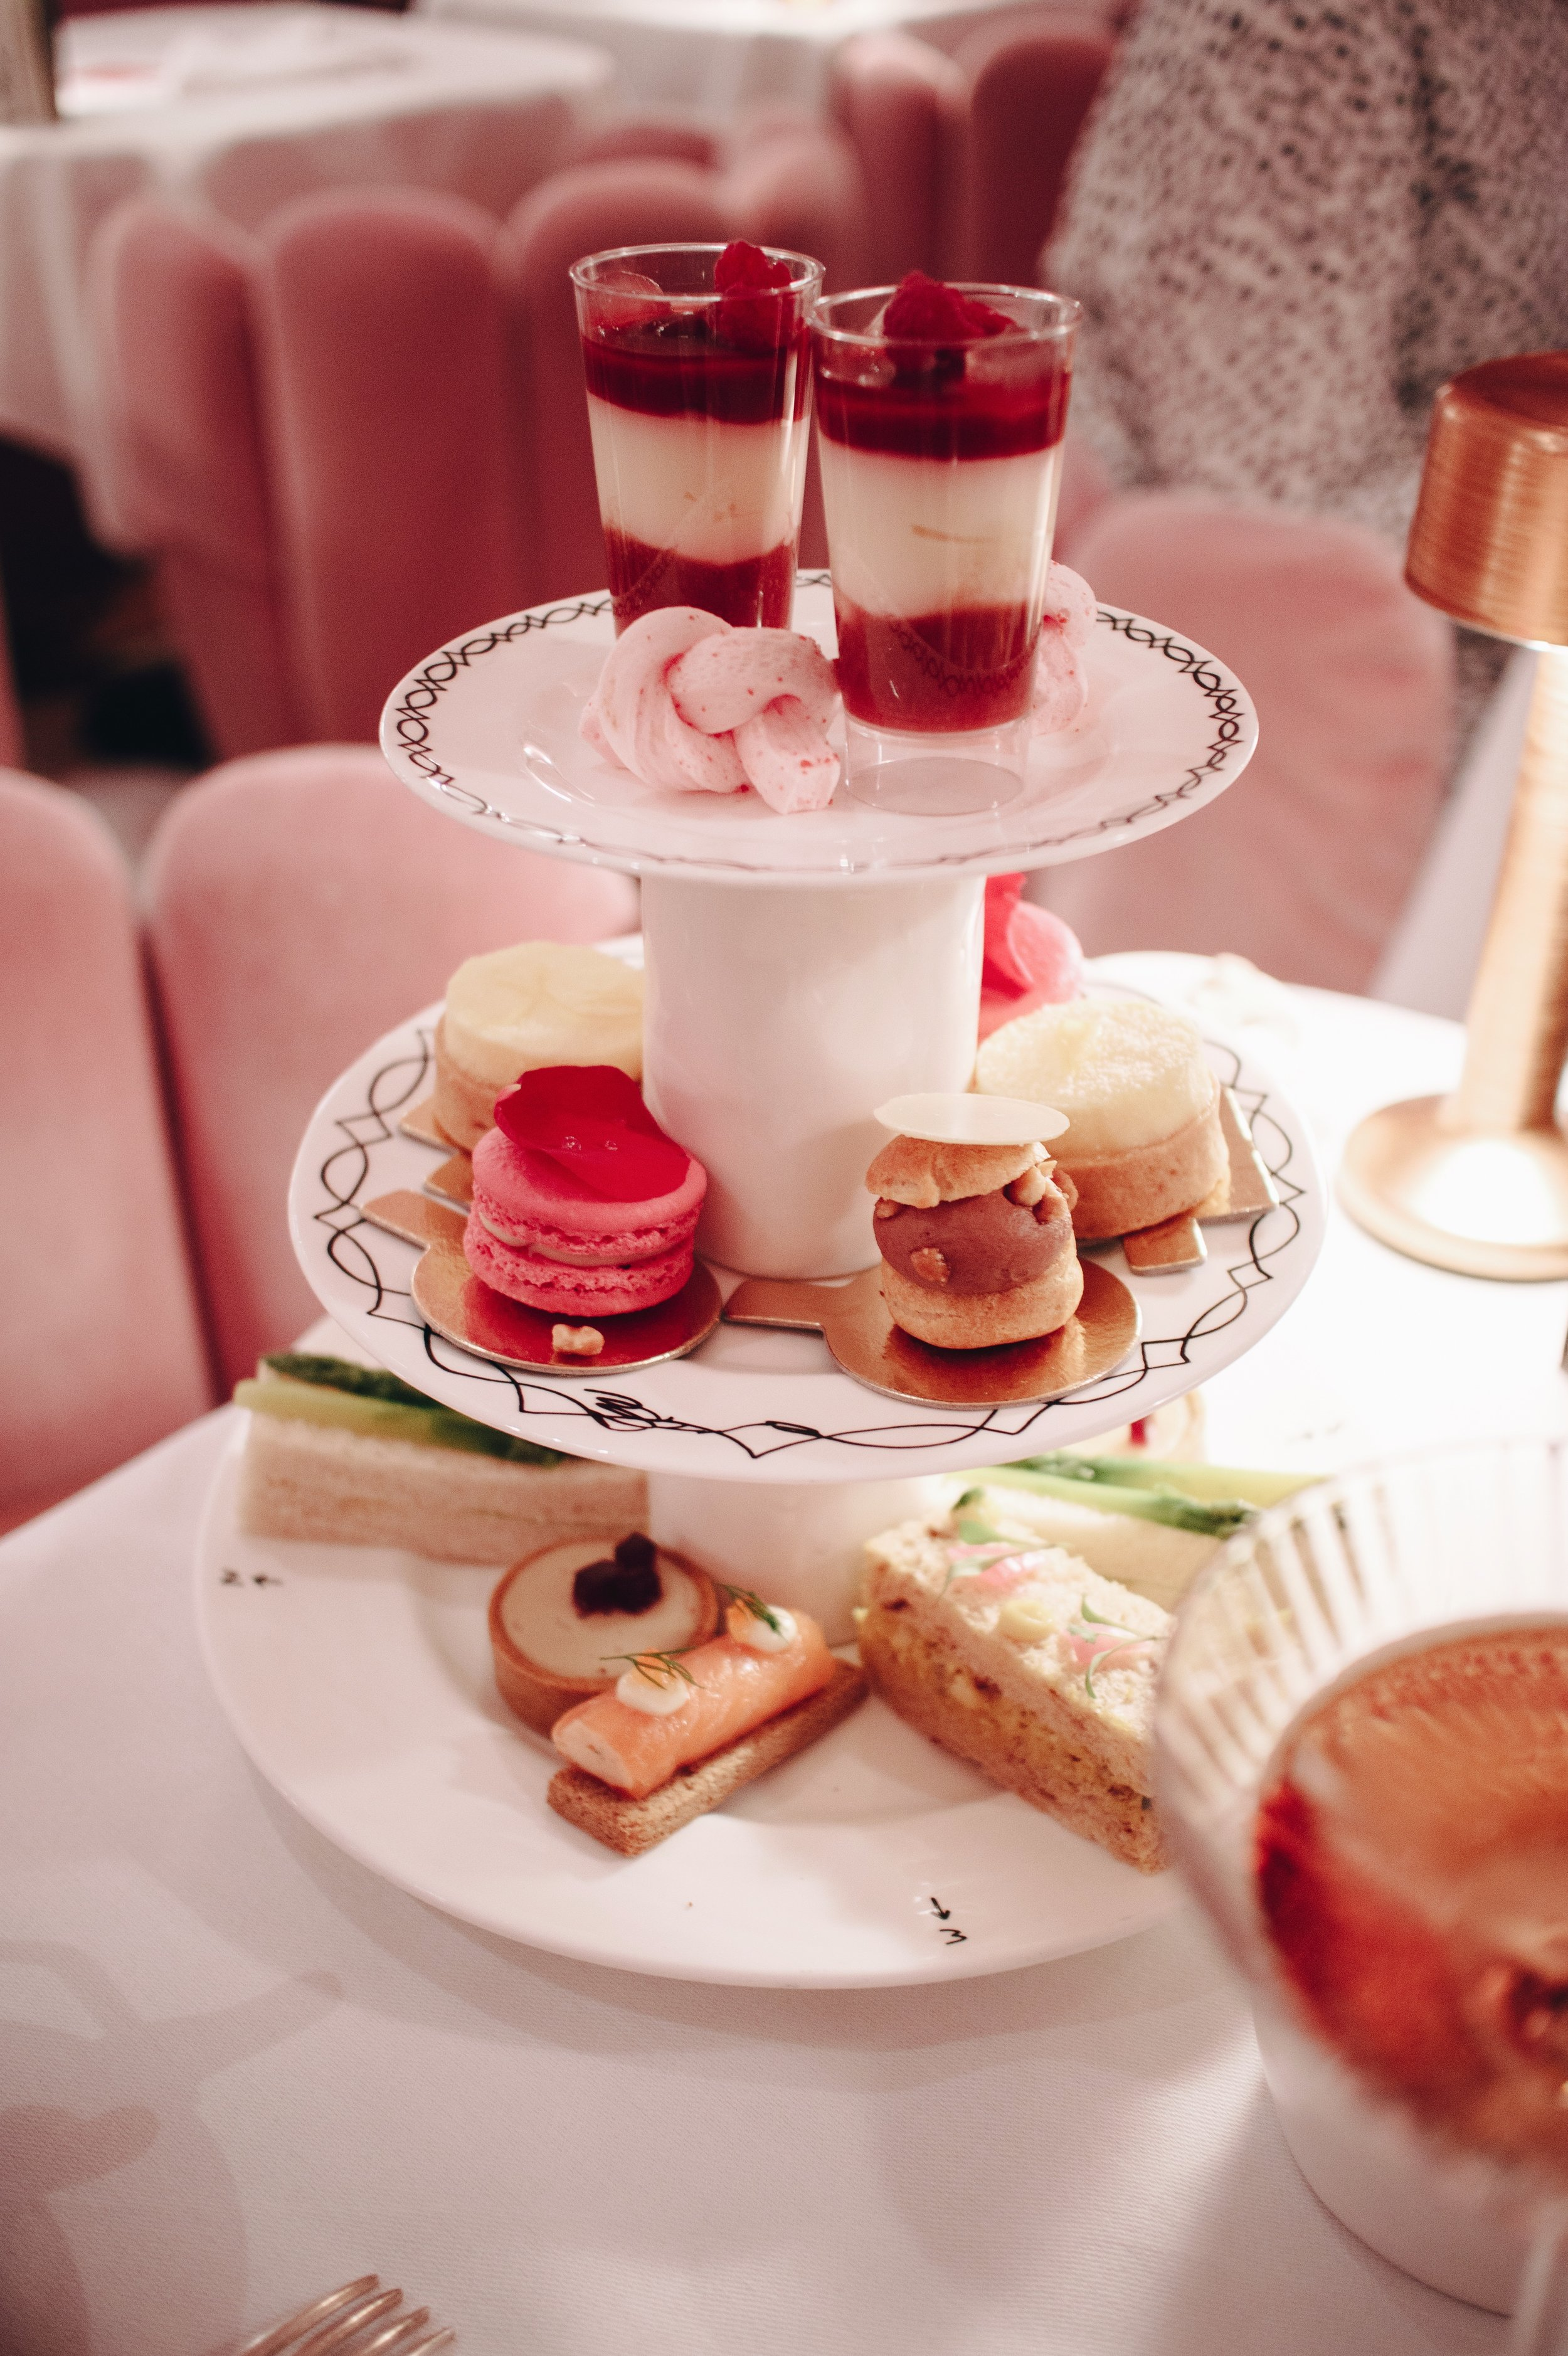 - When we arrived, we were taken to The Gallery, which is where they hold their afternoon tea. Being the lover of the colour pink that I am, my eyes naturally lit up and it was even more incredible than I imagined! The waiters were all sharply dressed, there was a man serving caviar in a pink suit and there was also a string band playing! Even the toilets were amazing! They had Diptyque candles lined up along the stairs to them and you do your business in one of these futuristic-looking pods! Very chic!There are a few different options that you can choose from on their afternoon tea menu and even the cheapest one that we chose (which was still quite expensive lol) was absolutely heavenly with so much to eat and drink! The option we went with allowed us two different teas each, so I went for some sort of fancy variation of my favourites; jasmine green tea and English breakfast. In addition to our tiered cake stand, there were a couple of other savoury dishes they brought out for us, as well as cake and scones to finish off. For how small the food is, you really don't think it would all be so filling, but by the end, I could barely get through half a scone! I definitely felt food FOMO afterwards because it was all so delicious!Our plan was to spend the rest of the afternoon shopping, but because the weather was so heinous and the atmosphere in Sketch was just so dreamy, we decided to stay put for a good few hours and make the most of our time there. It's definitely an experience to be savoured and regardless of price, I would go back in a heartbeat. I can't imagine afternoon tea getting any better than this!